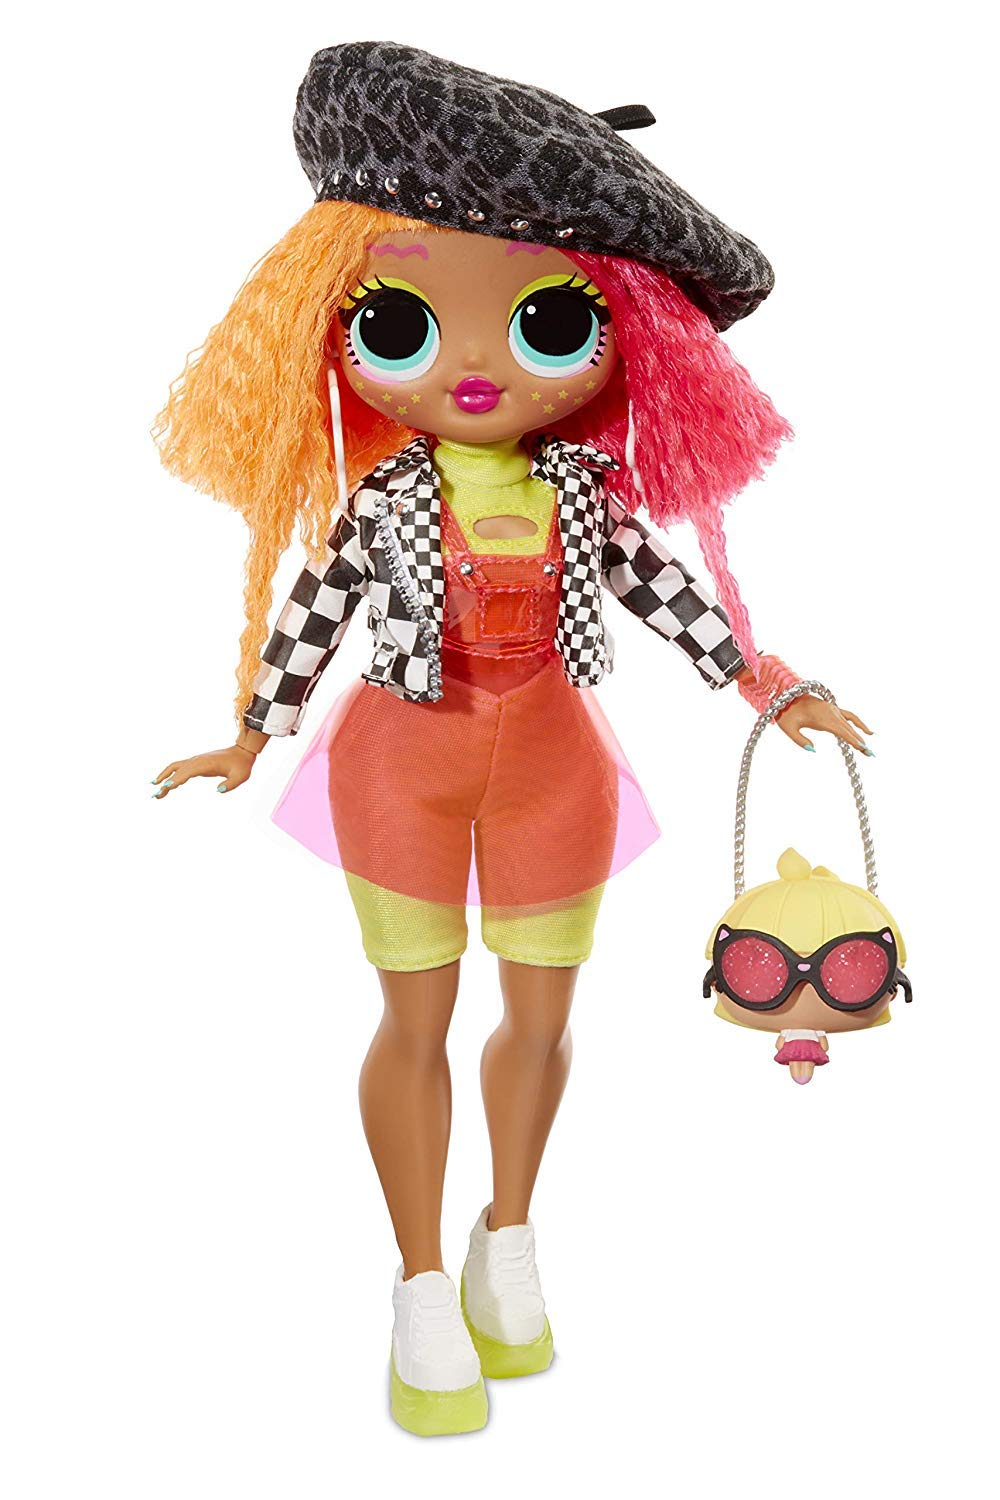 560562 L.O.L O.M.G Multi L.O.L Surprise Lady Diva Fashion Doll with 20 Surprises